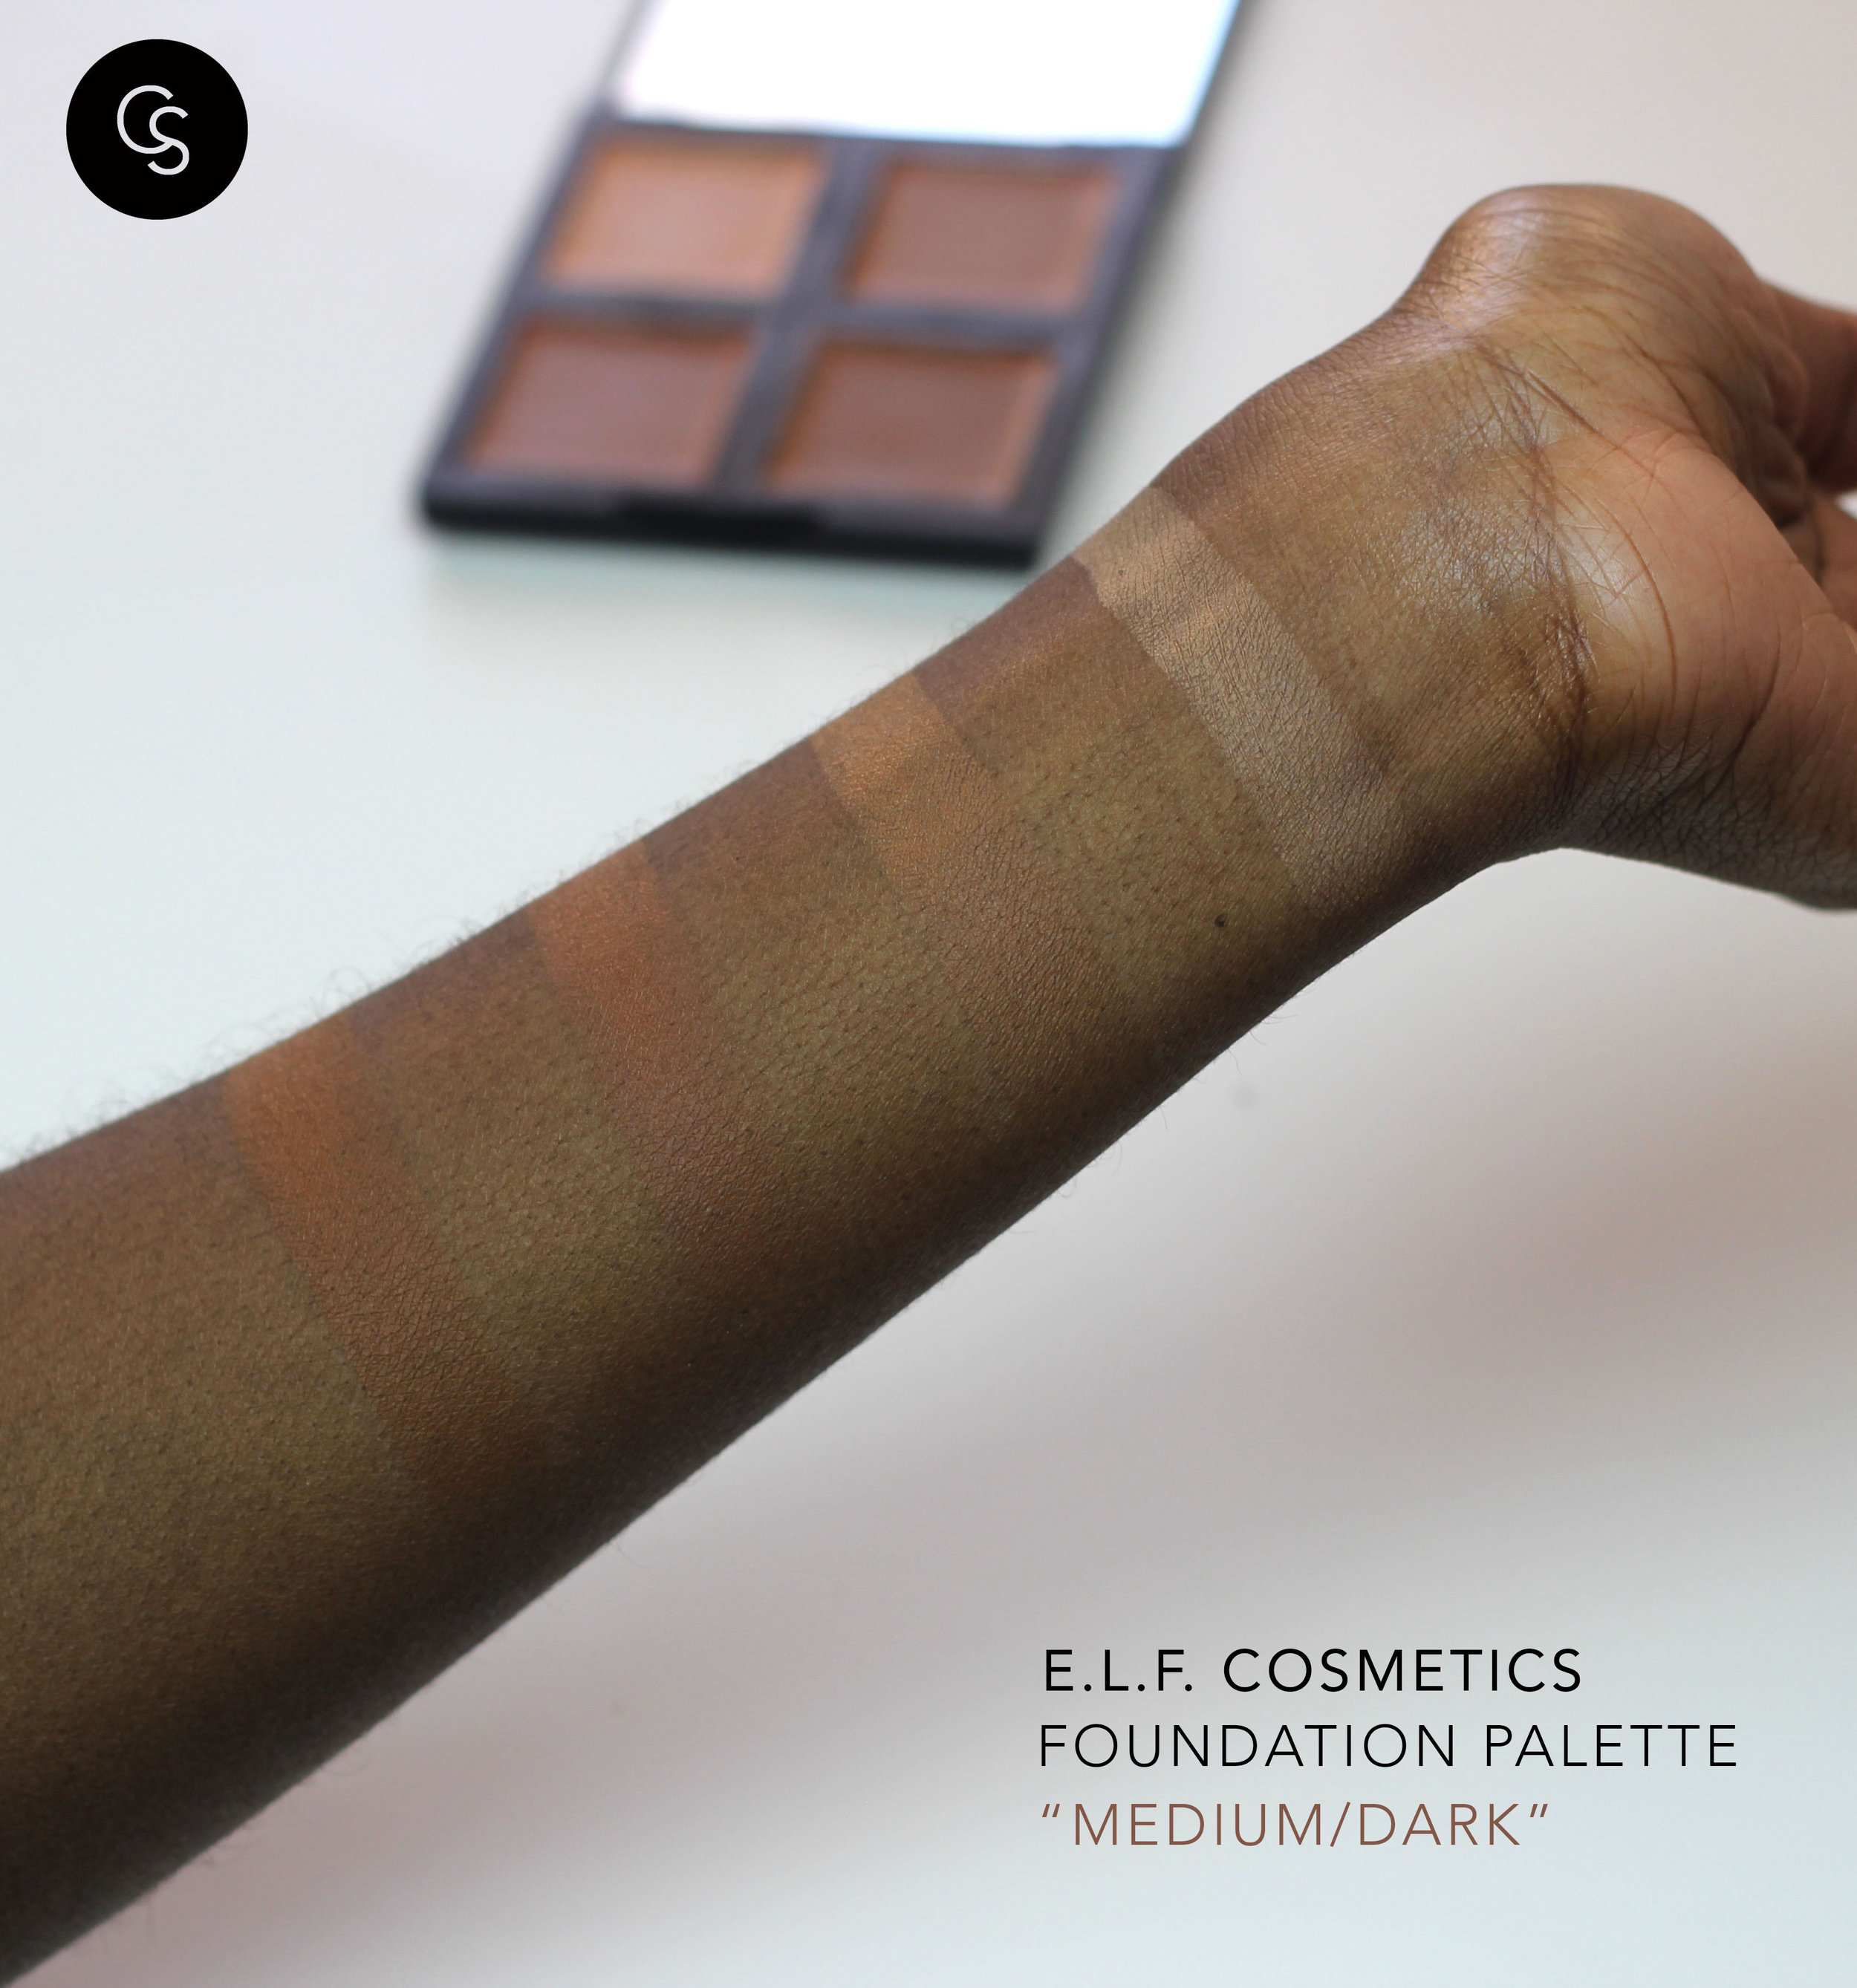 elf foundation in medium/dark